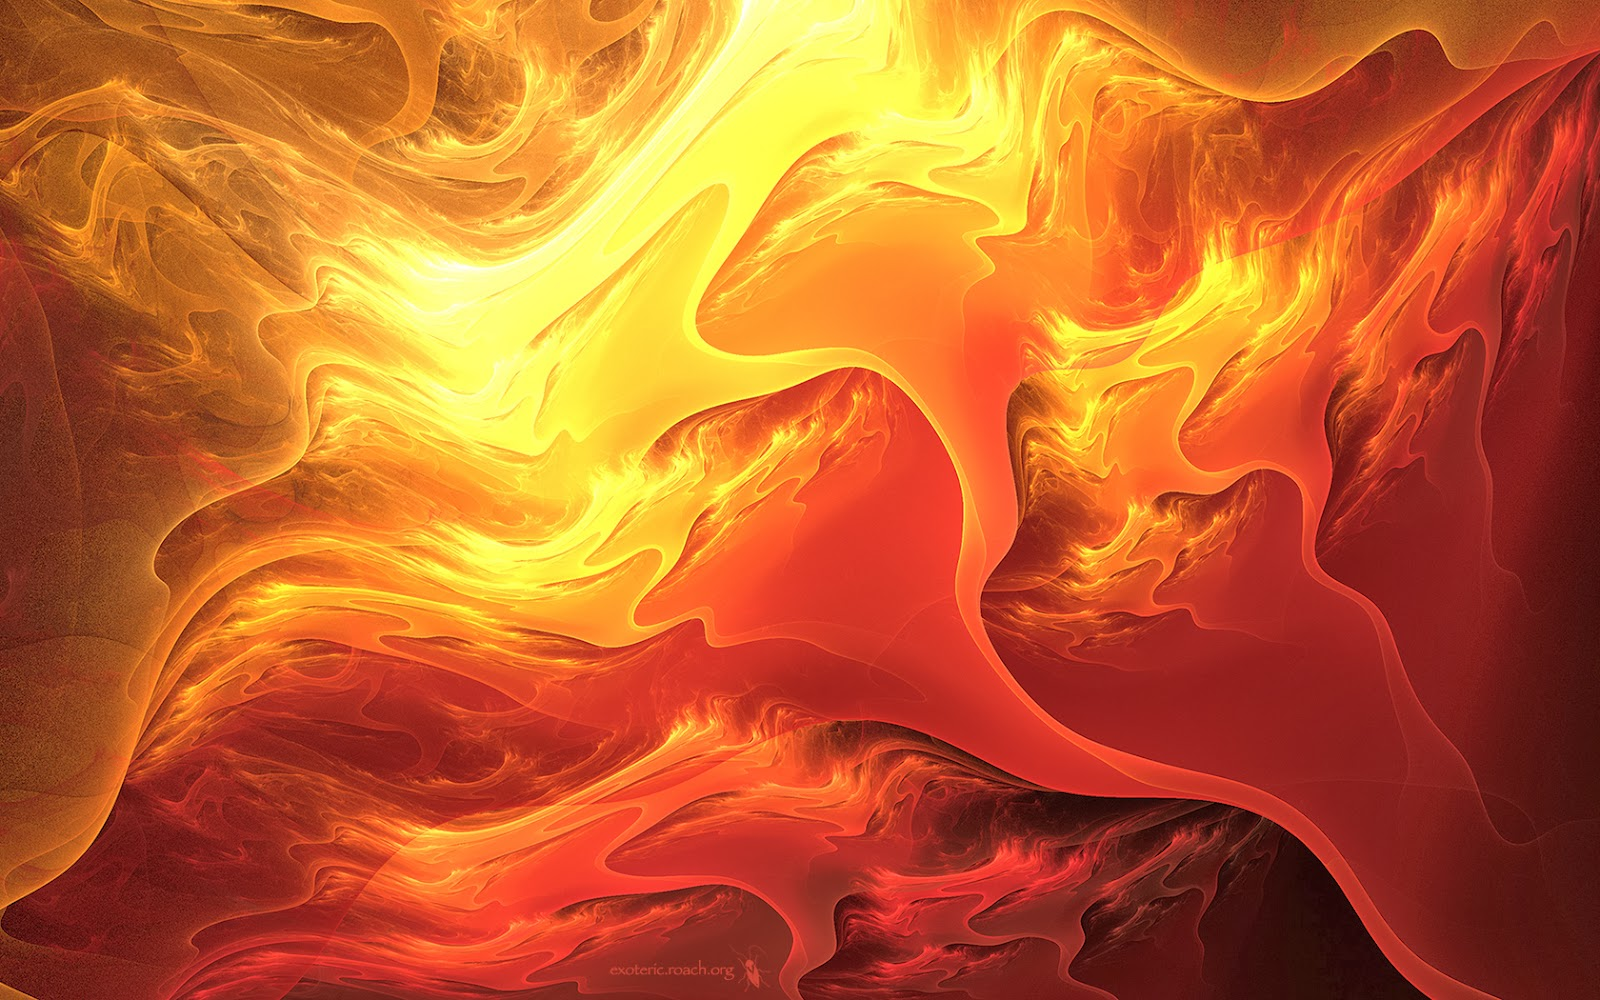 Elementary Os Snippets Blatte S Backgrounds Fractal Images Free For Use As Wallpaper